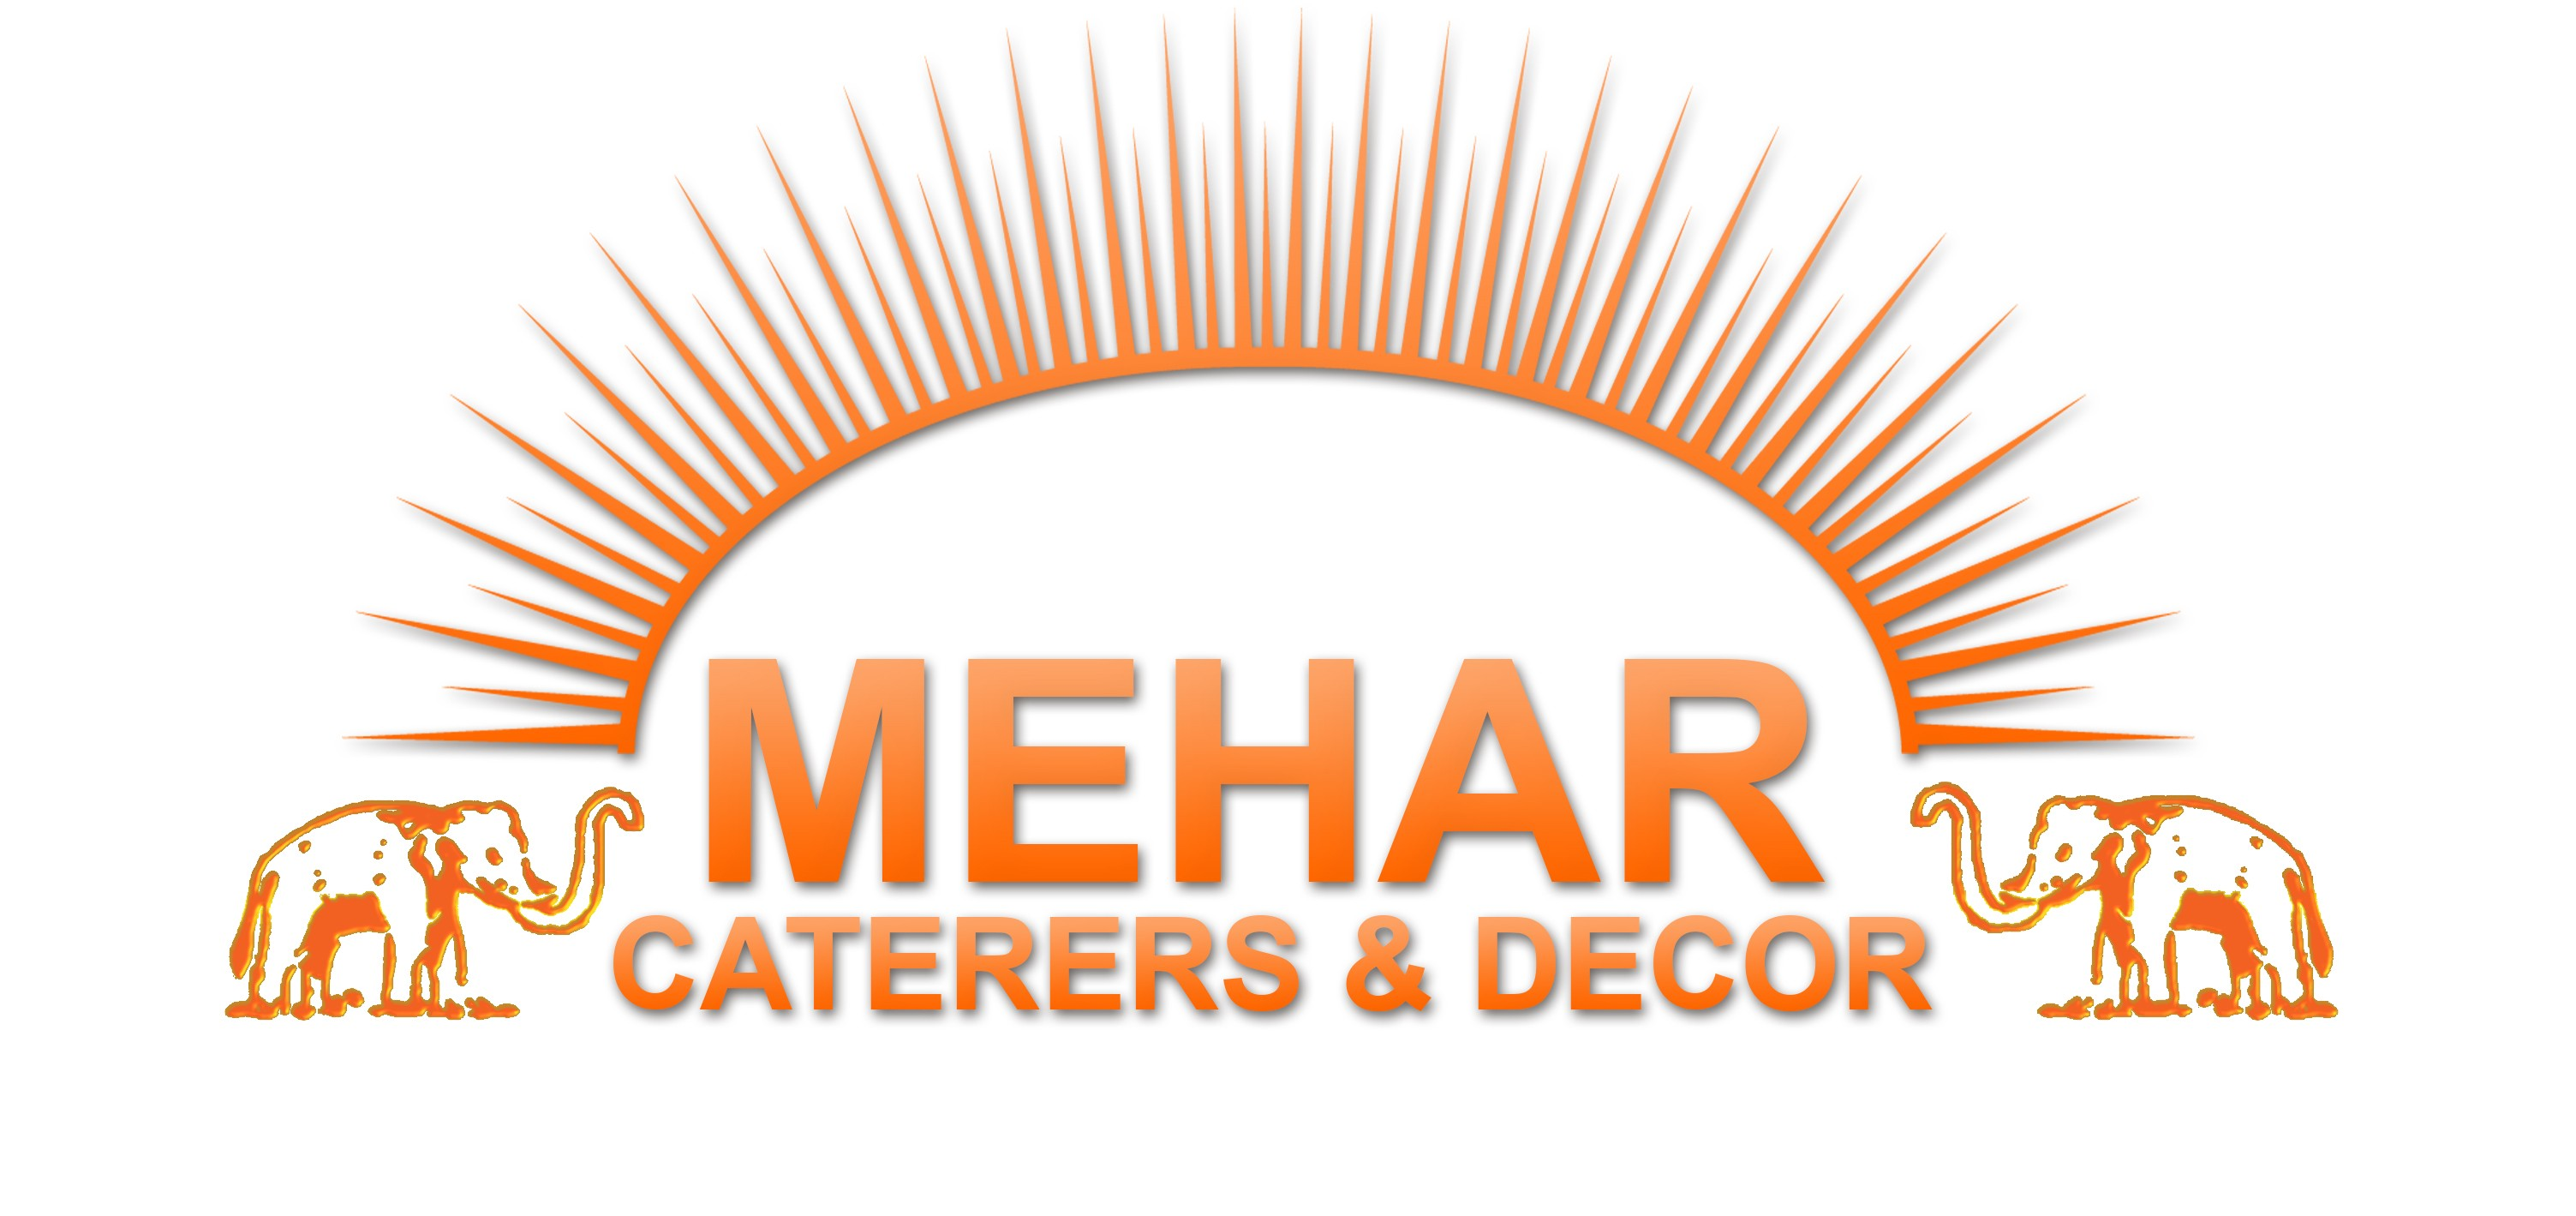 Mehar Caterers & Decor